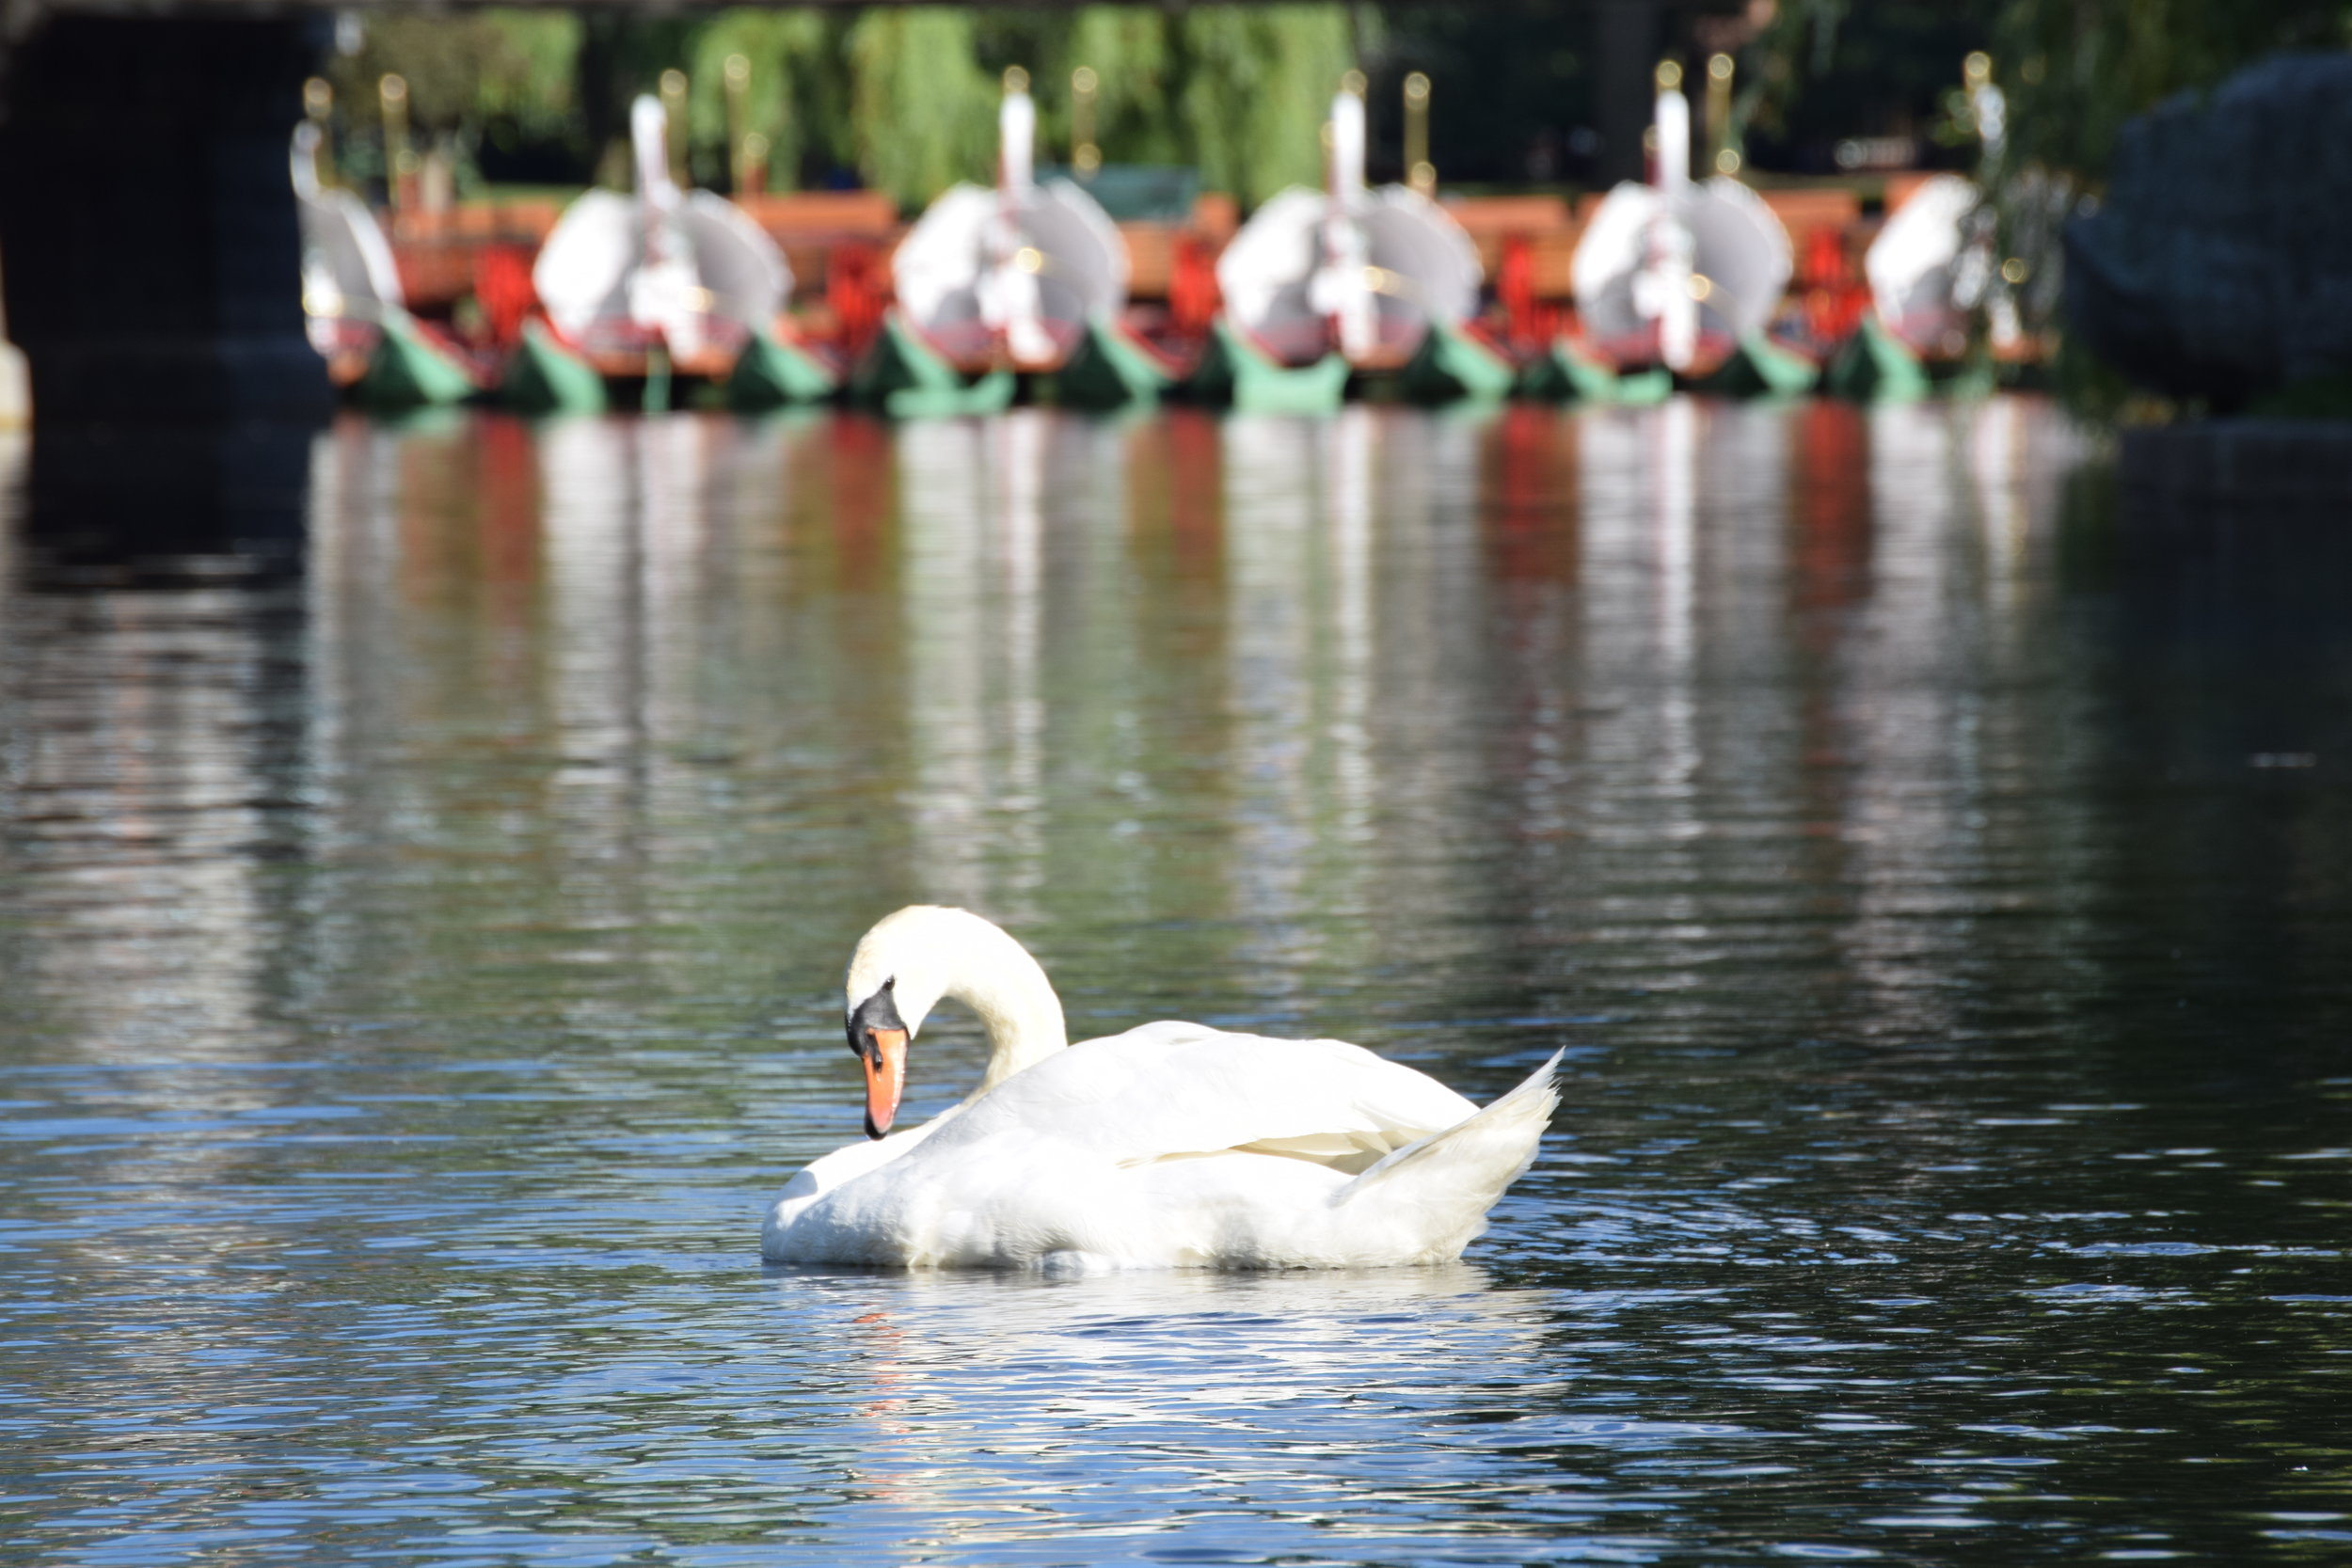 A swan rests in a pond at Boston Common known for its swan boats.